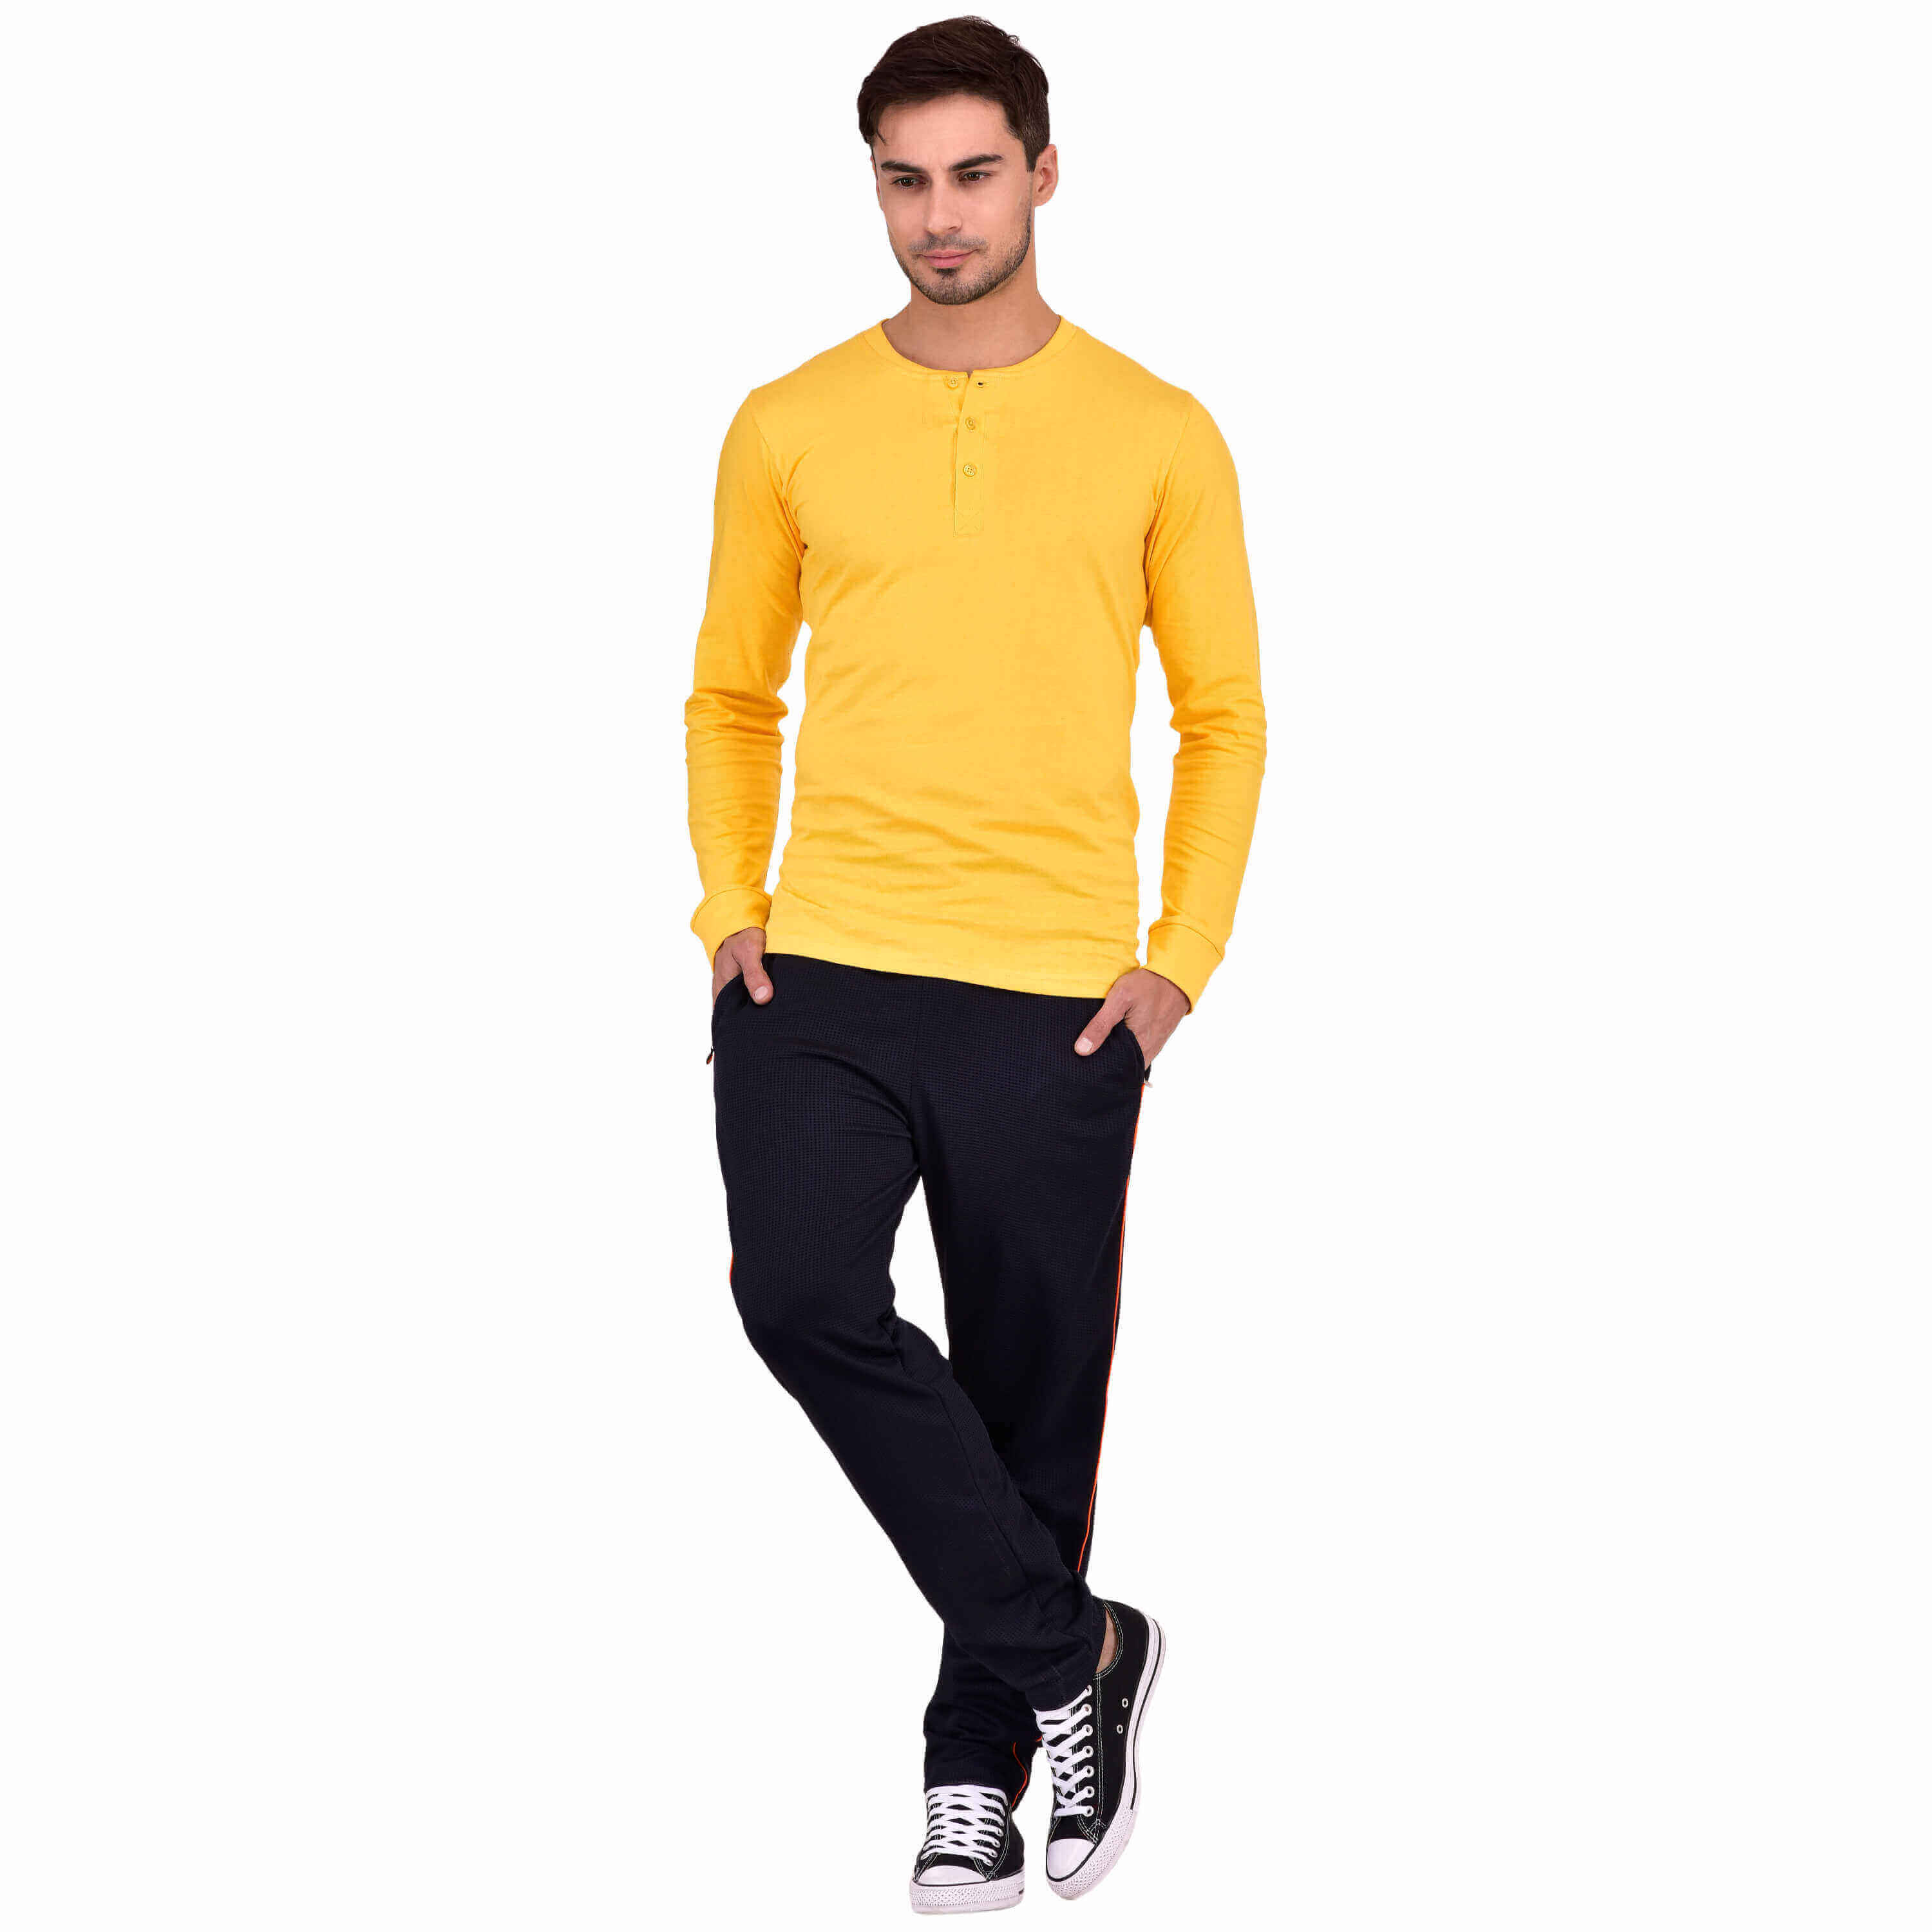 Long T Shirt Manufacturers in Nanded